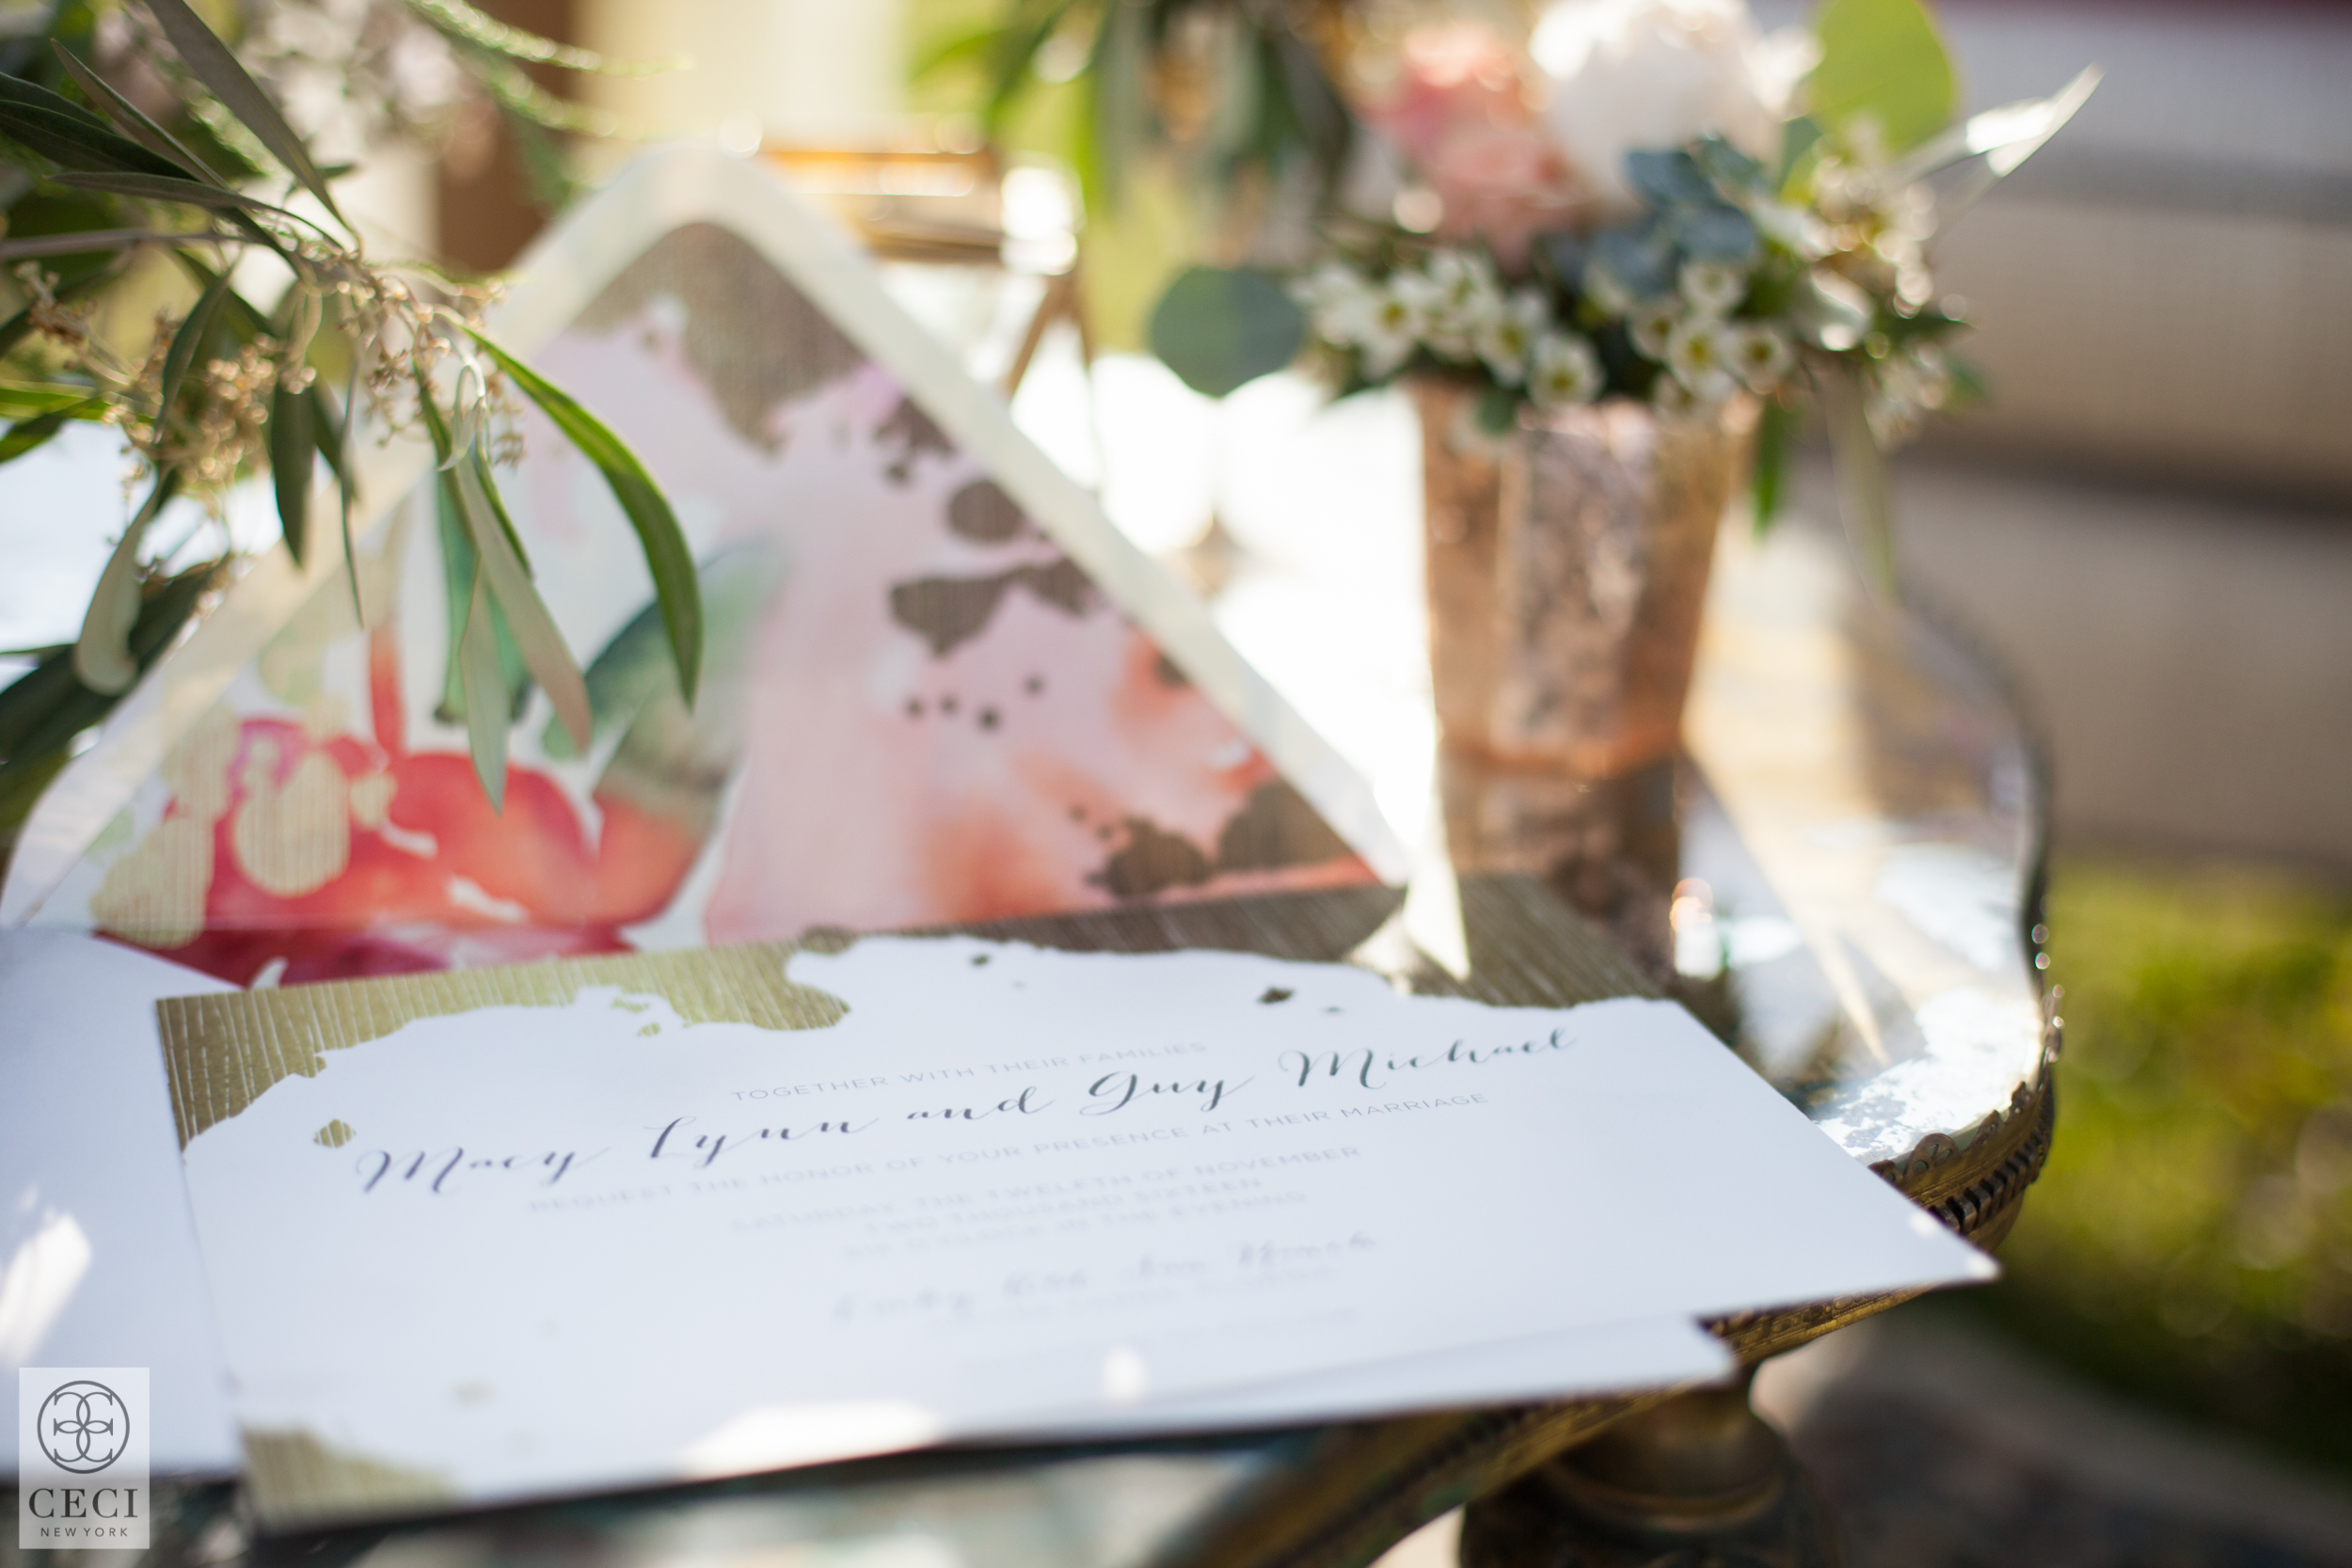 Ceci_New_York_Ceci_Style_Ceci_Johnson_Luxury_Lifestyle_Wedding_Floral_Sara_Kauss_Lucky_Sun_Ranch_Watercolor_Hand_Painted_Inspiration_Design_Custom_Couture_Personalized_Invitations_-5.jpg